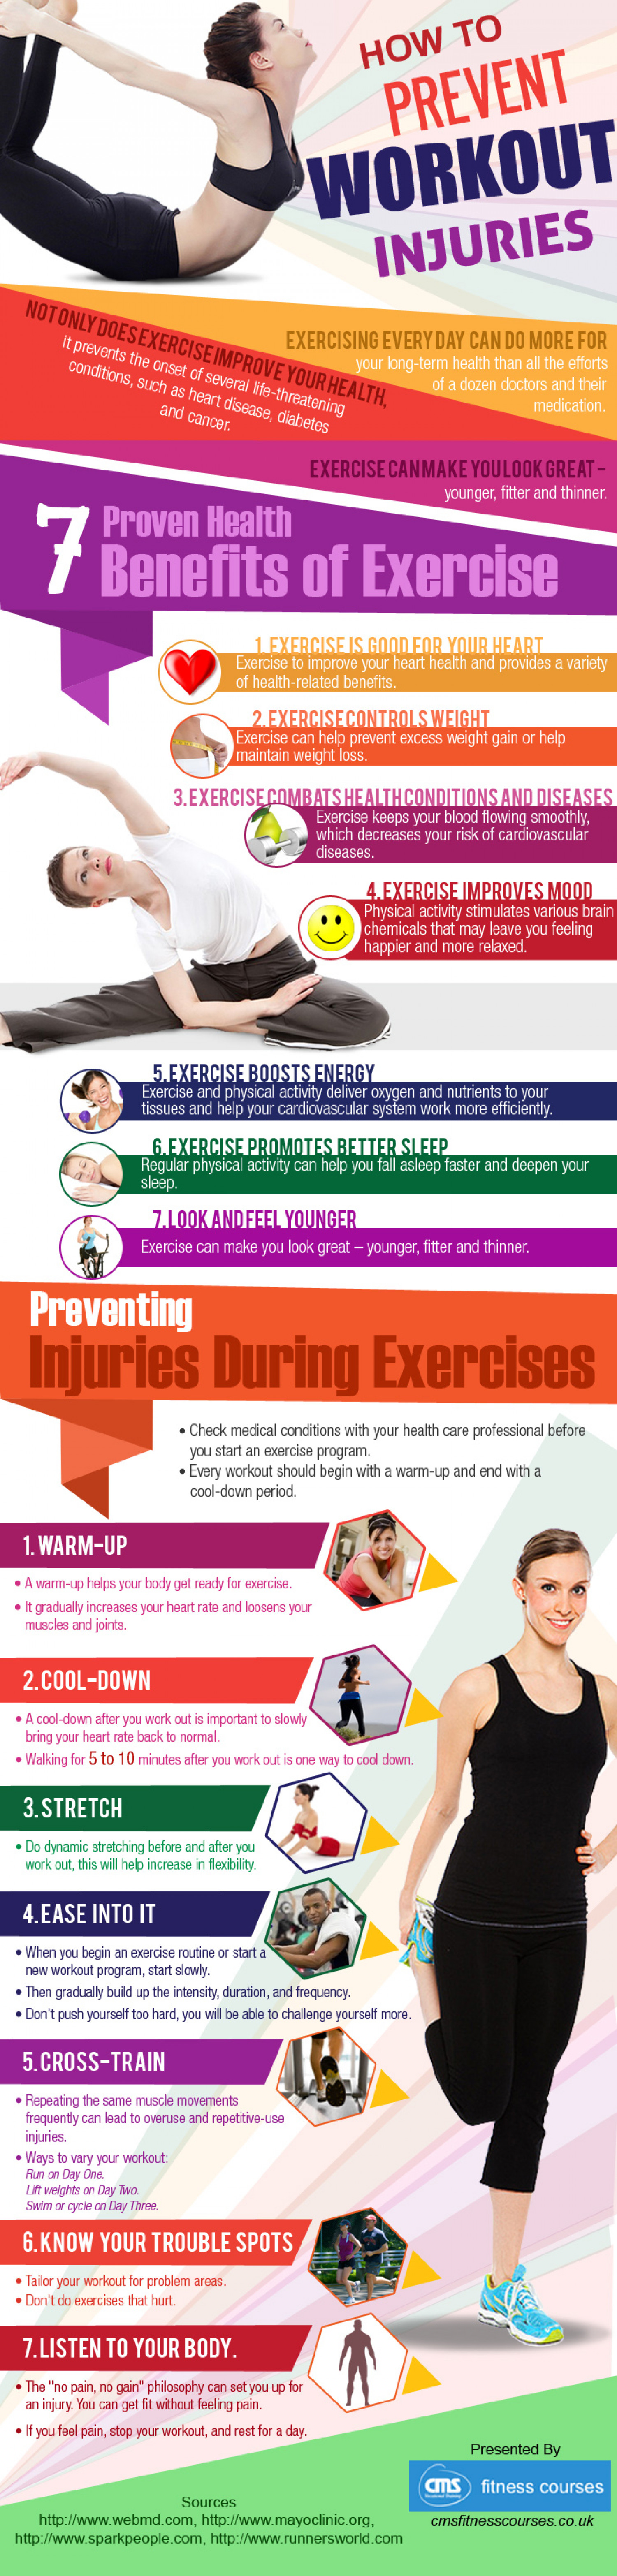 How to Prevent Workout Injuries Infographic